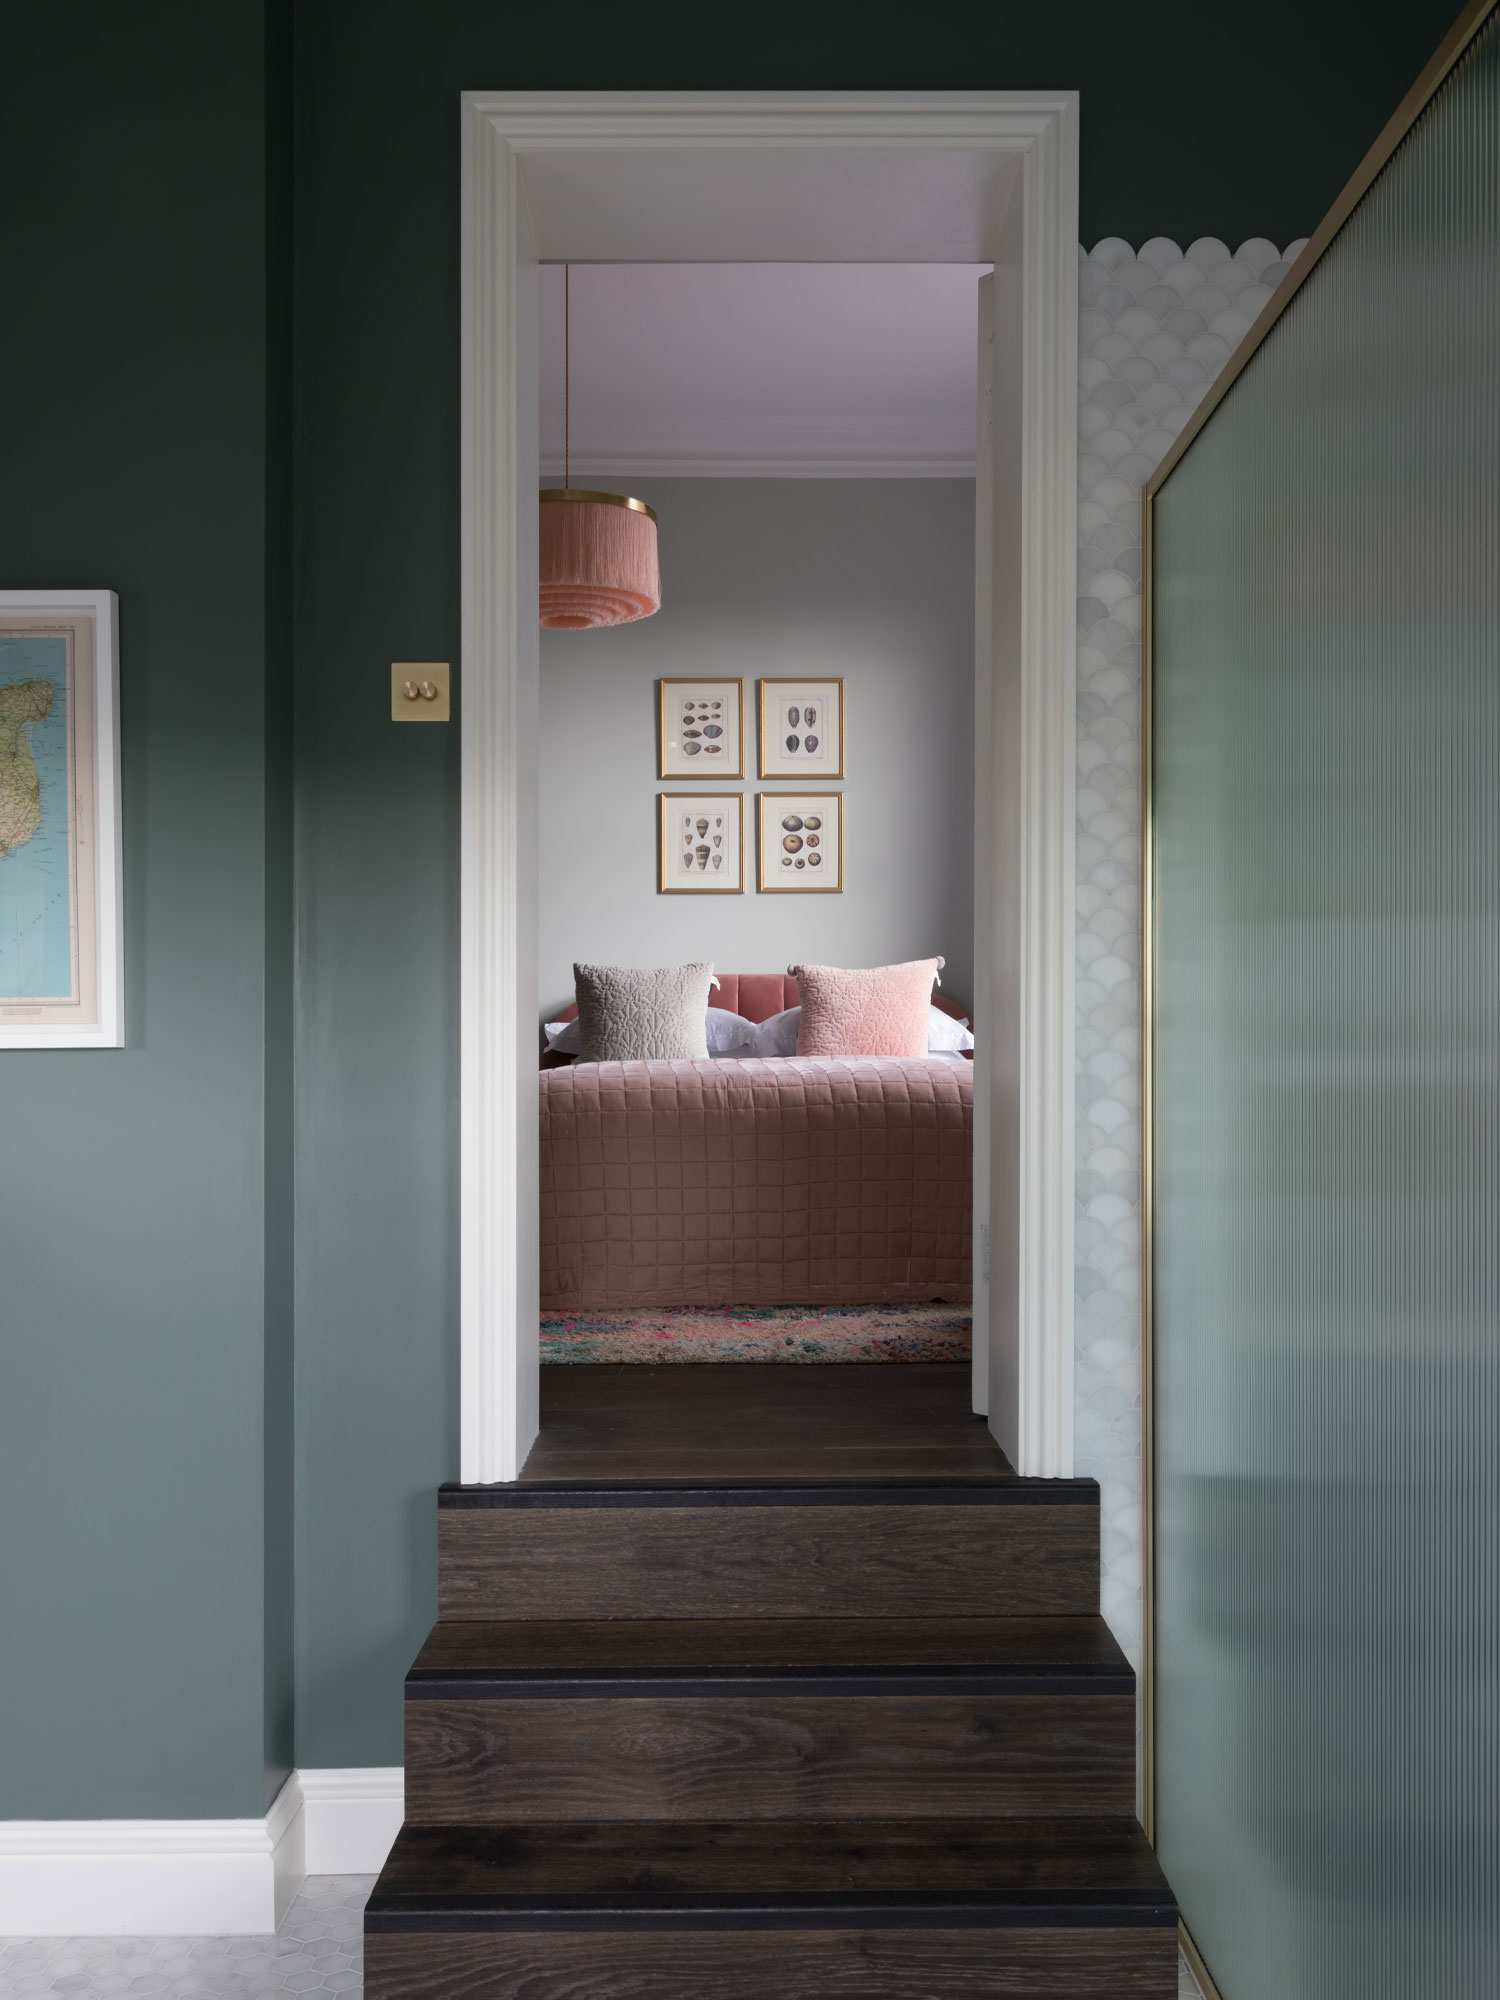 West One Bathrooms Inspiration Turning a Spare Room into a Large Bathroom image1a